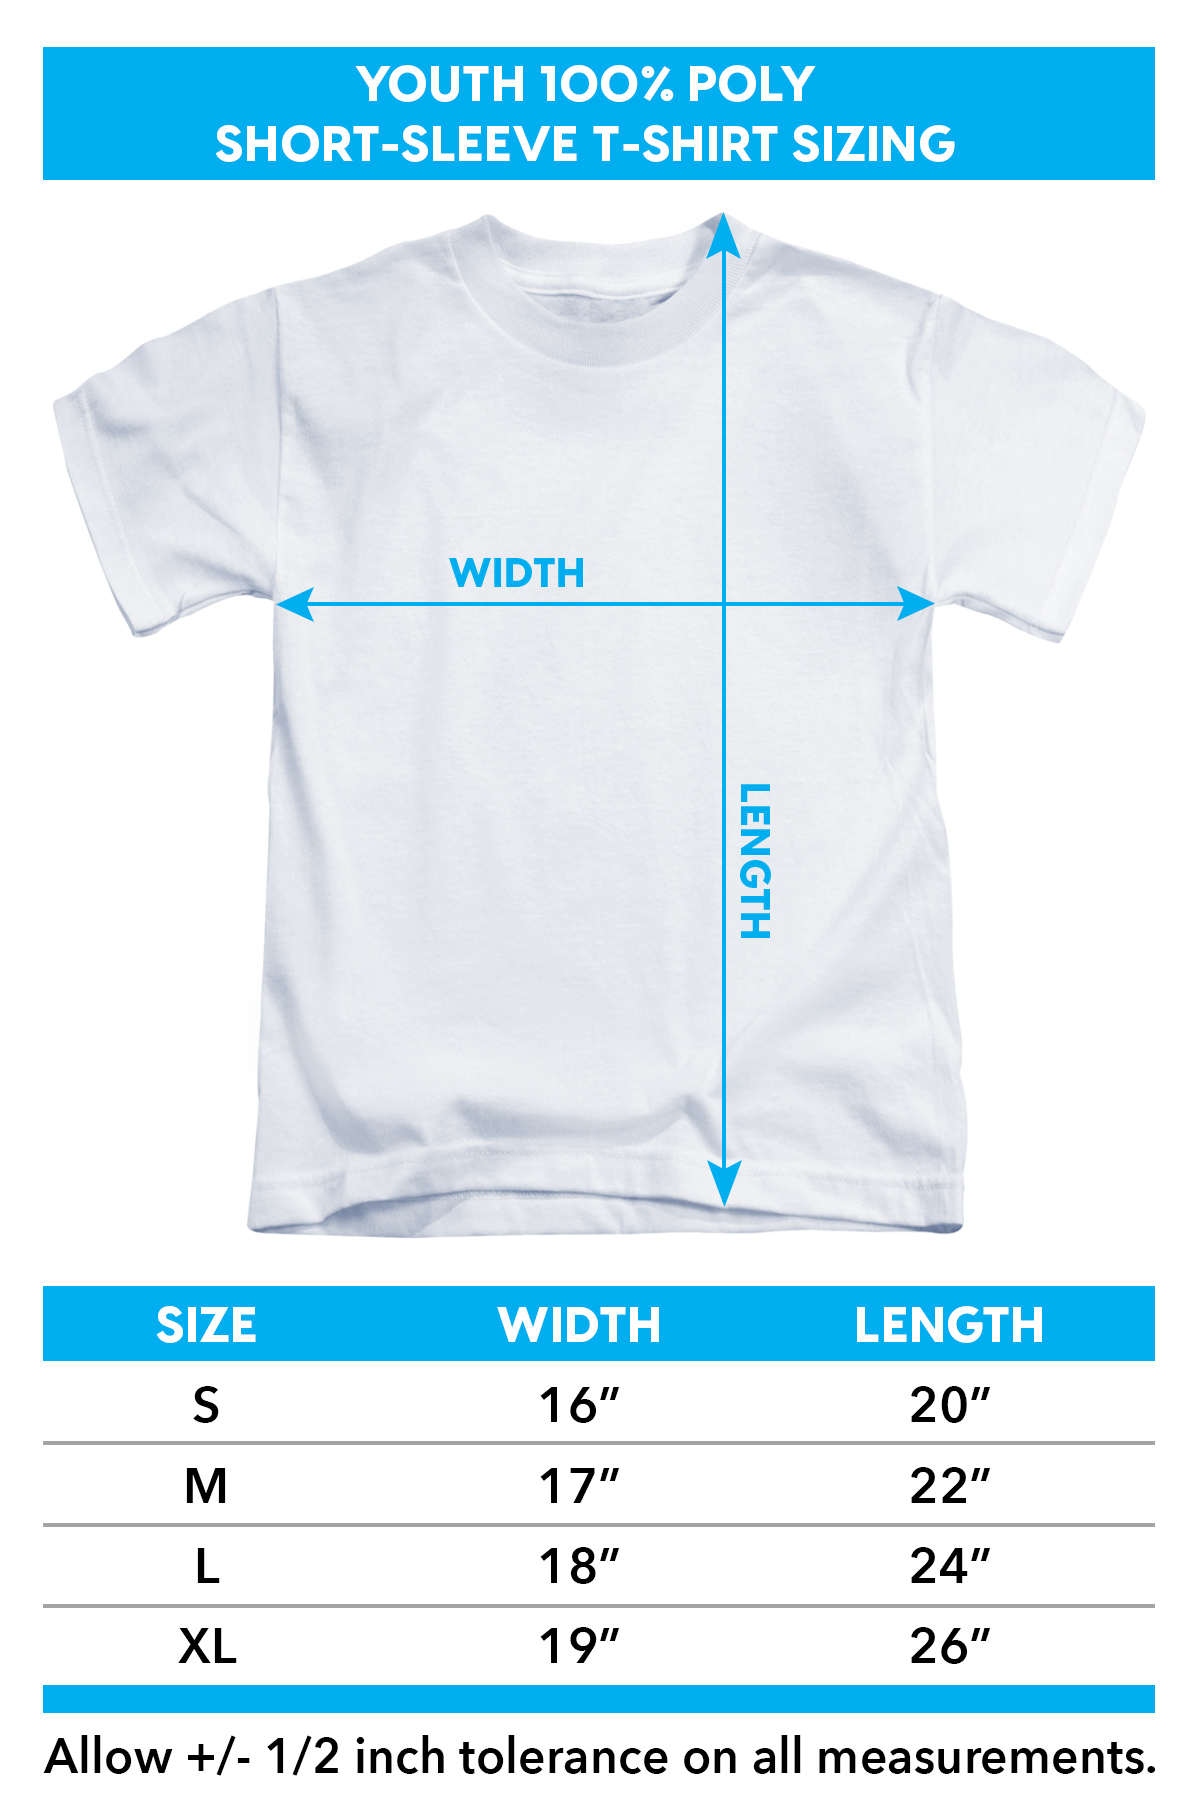 Sizing Chart for Shazam T-Shirt - Sublimated Uniform